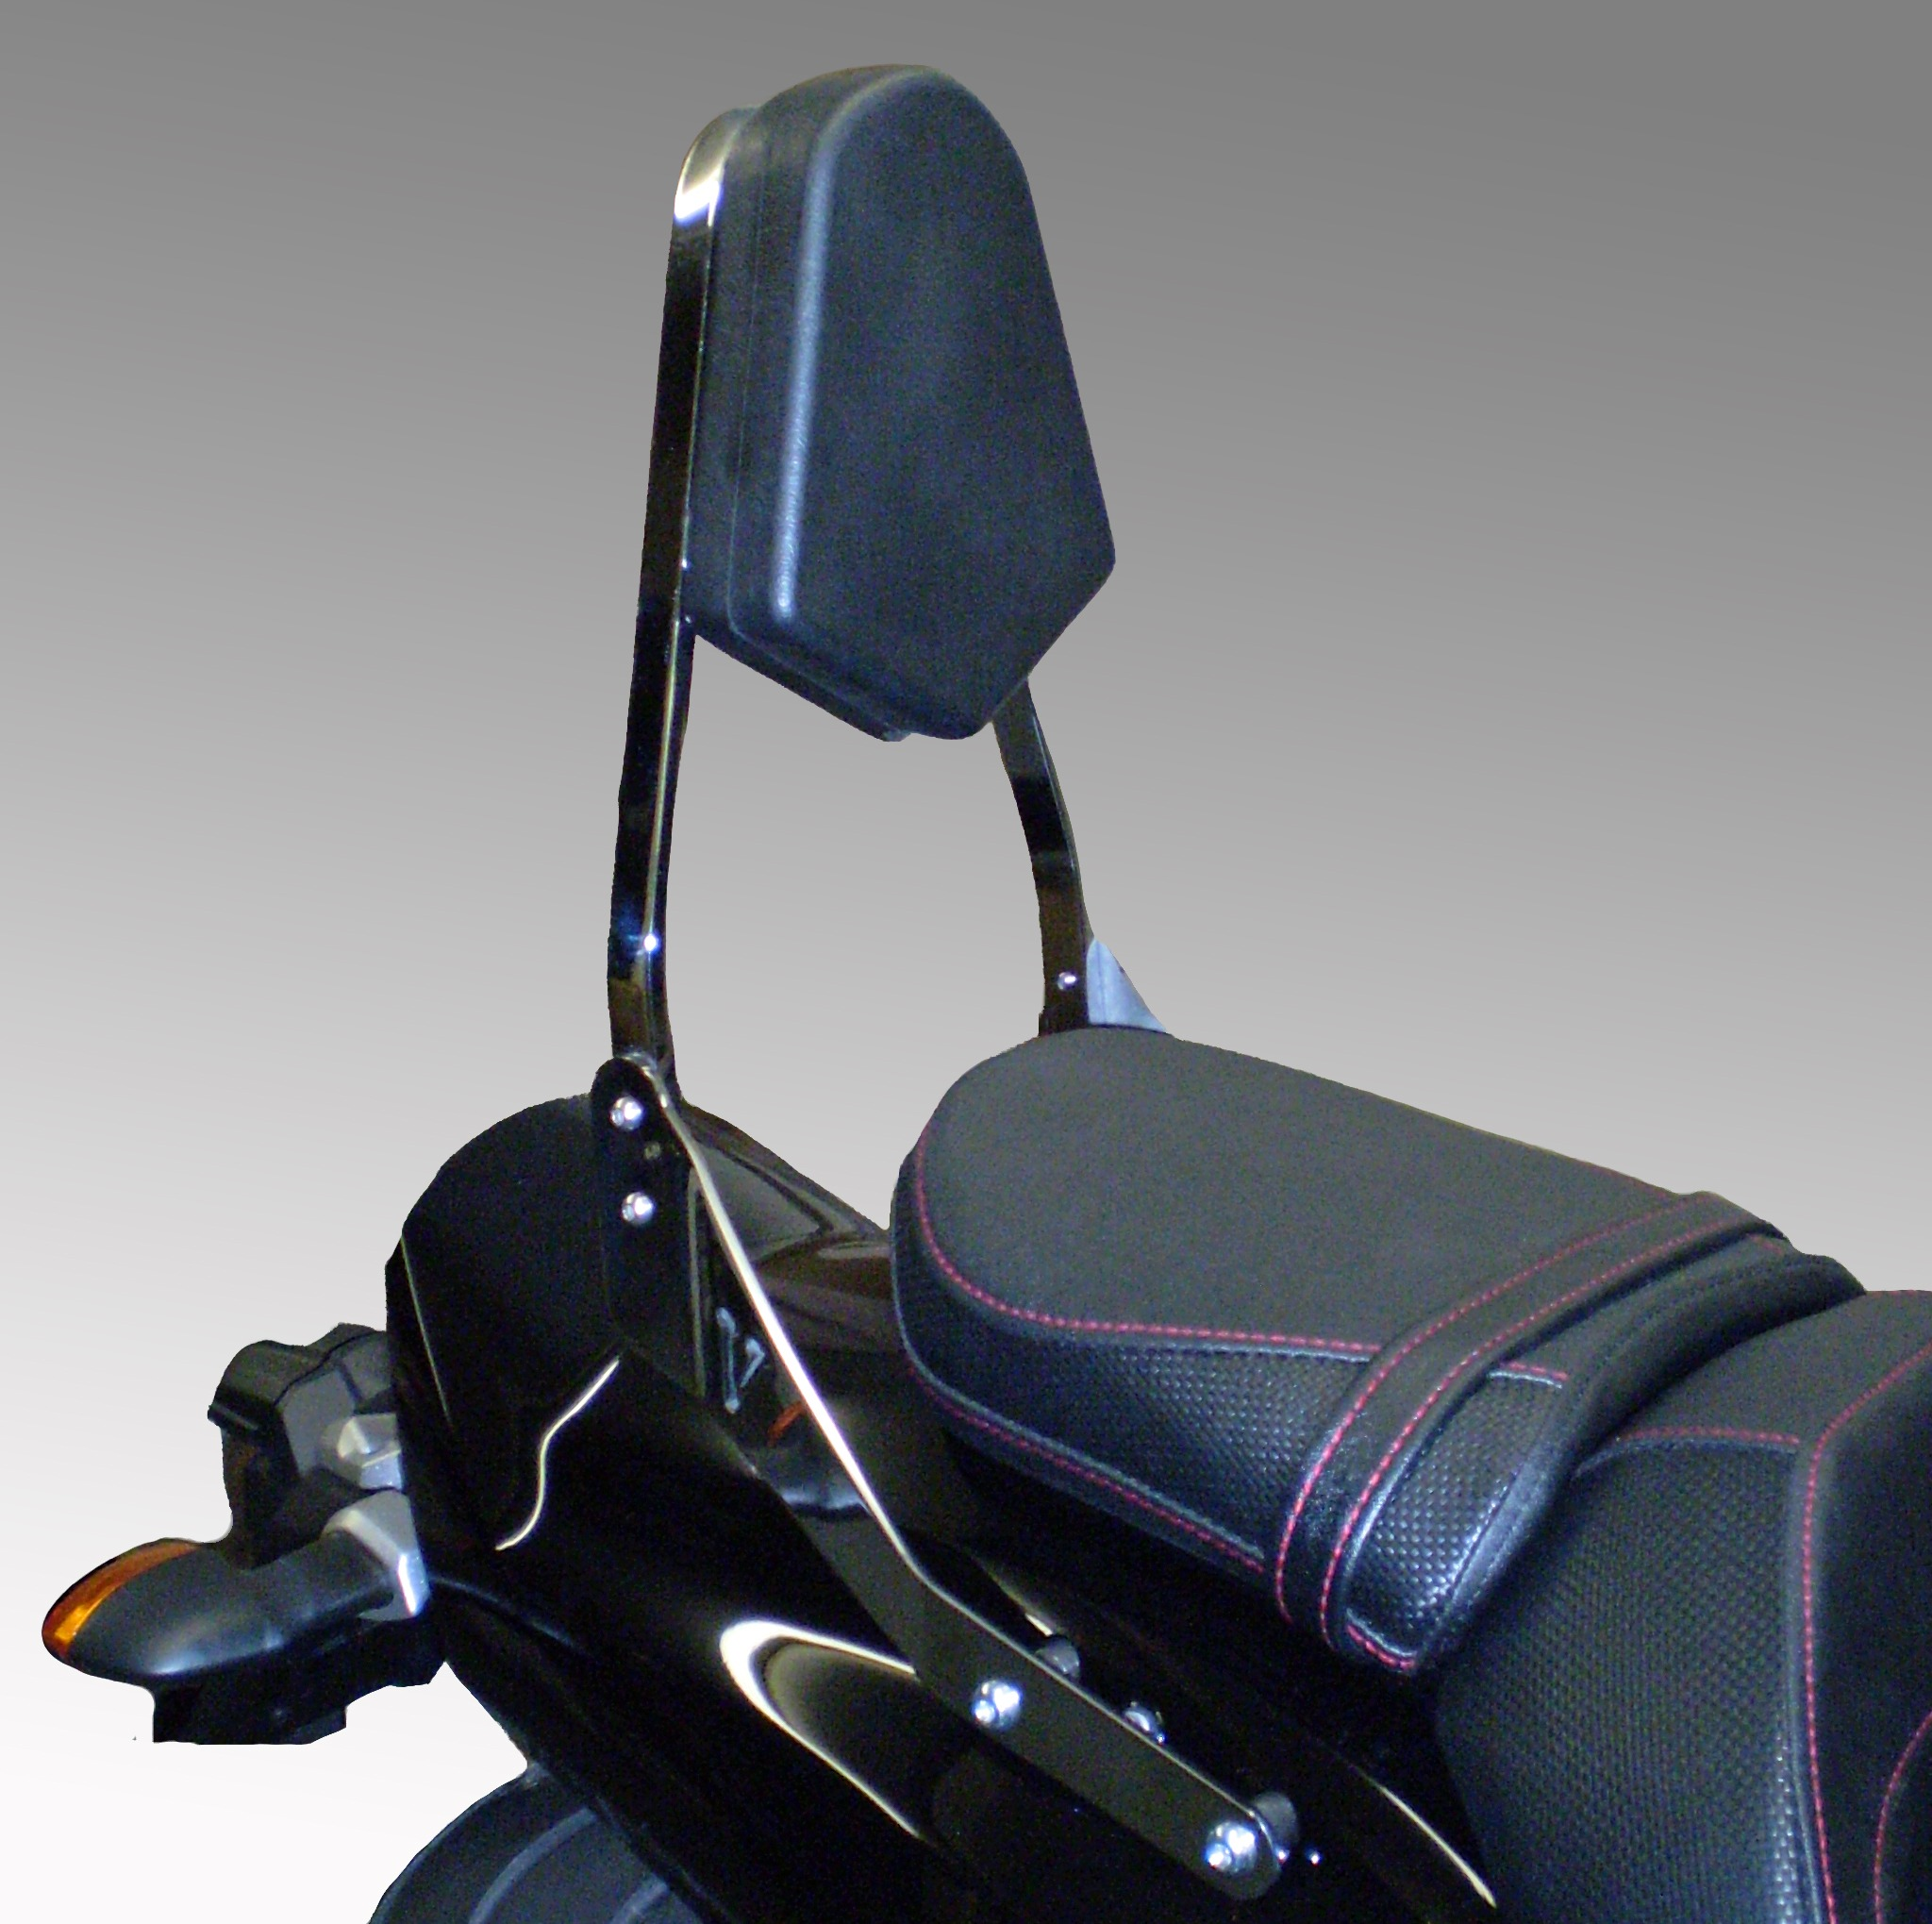 Yamaha V-Max 1700 Sissy Bar (Incl Padded Backrest & Brackets) In Black